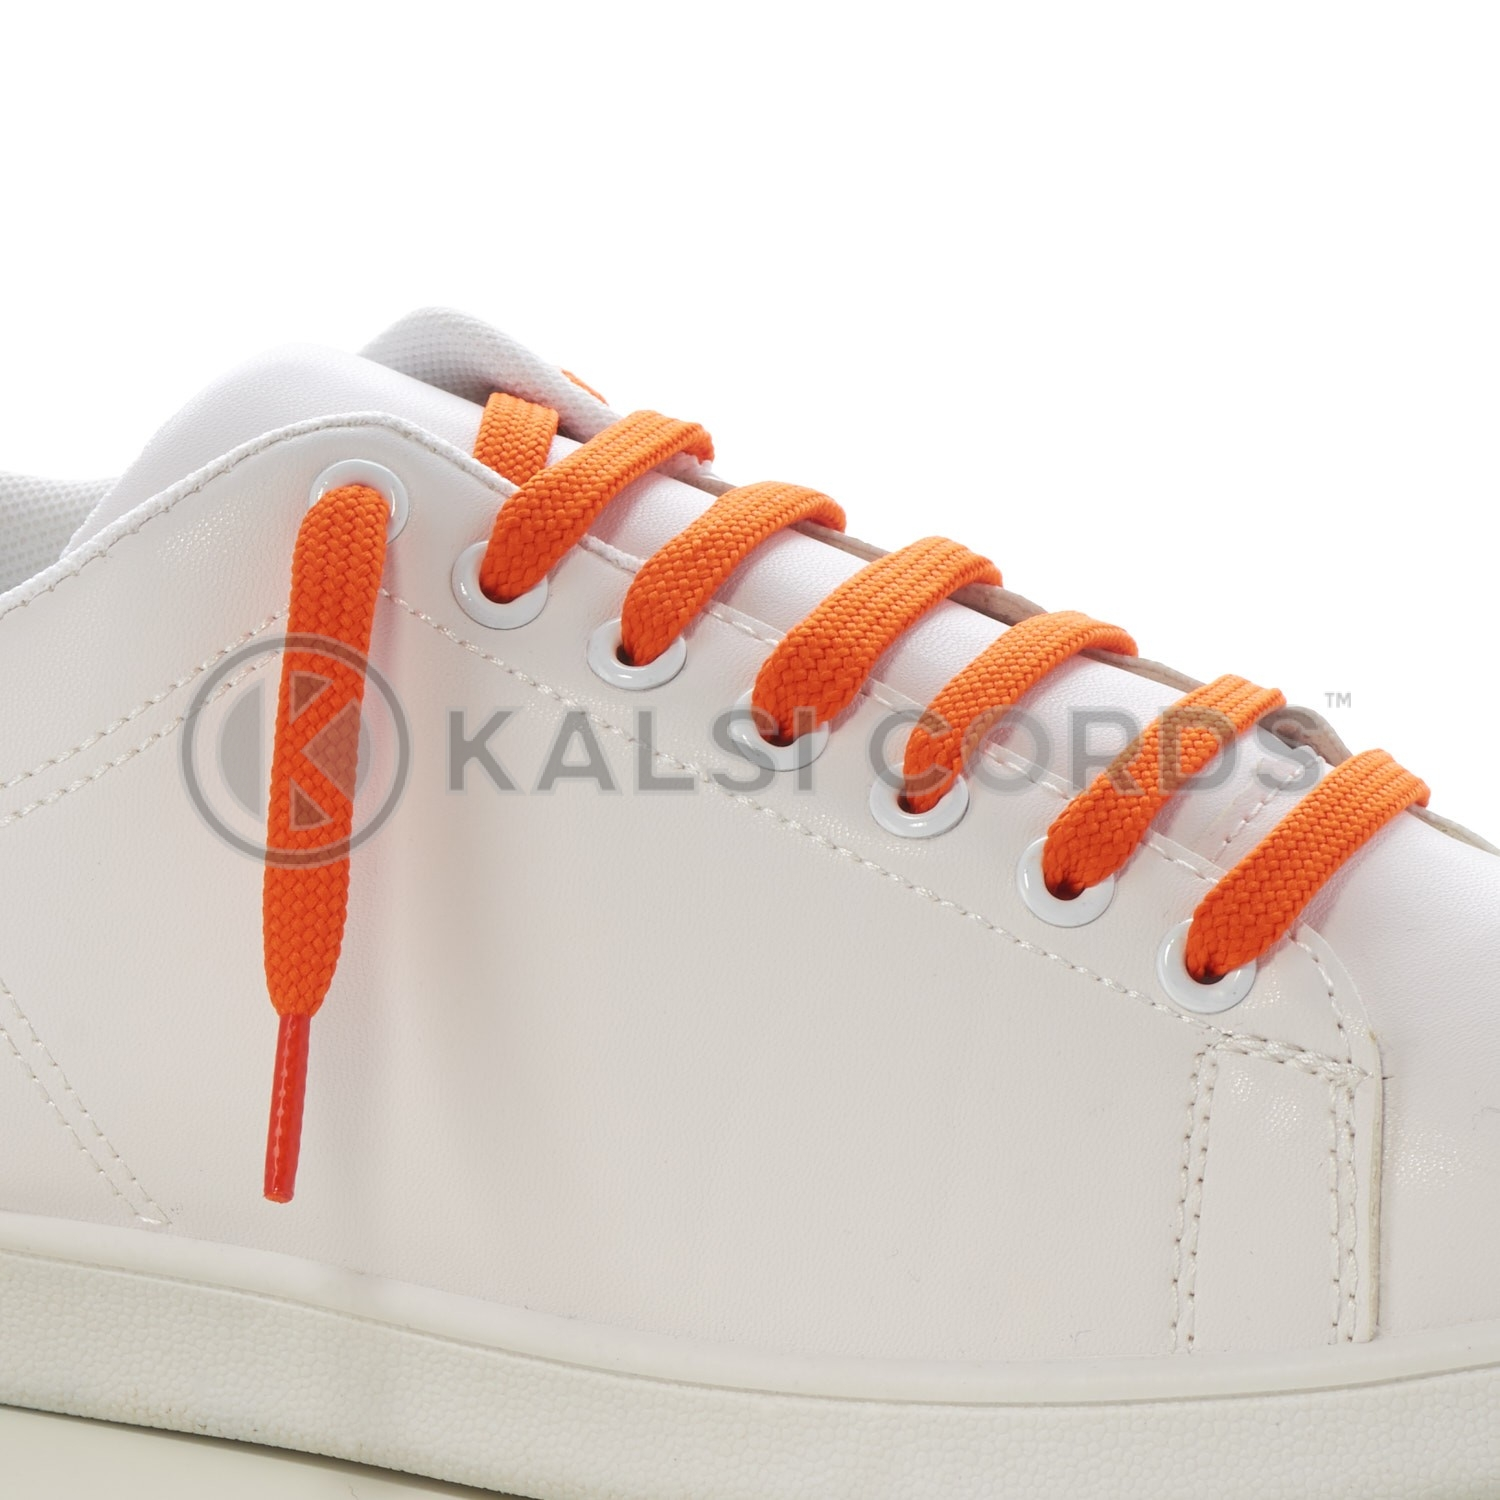 9mm Flat Shoe Laces Tubular Orange PG738 Sports Trainers Boots Footwear Drawstring Drawcord